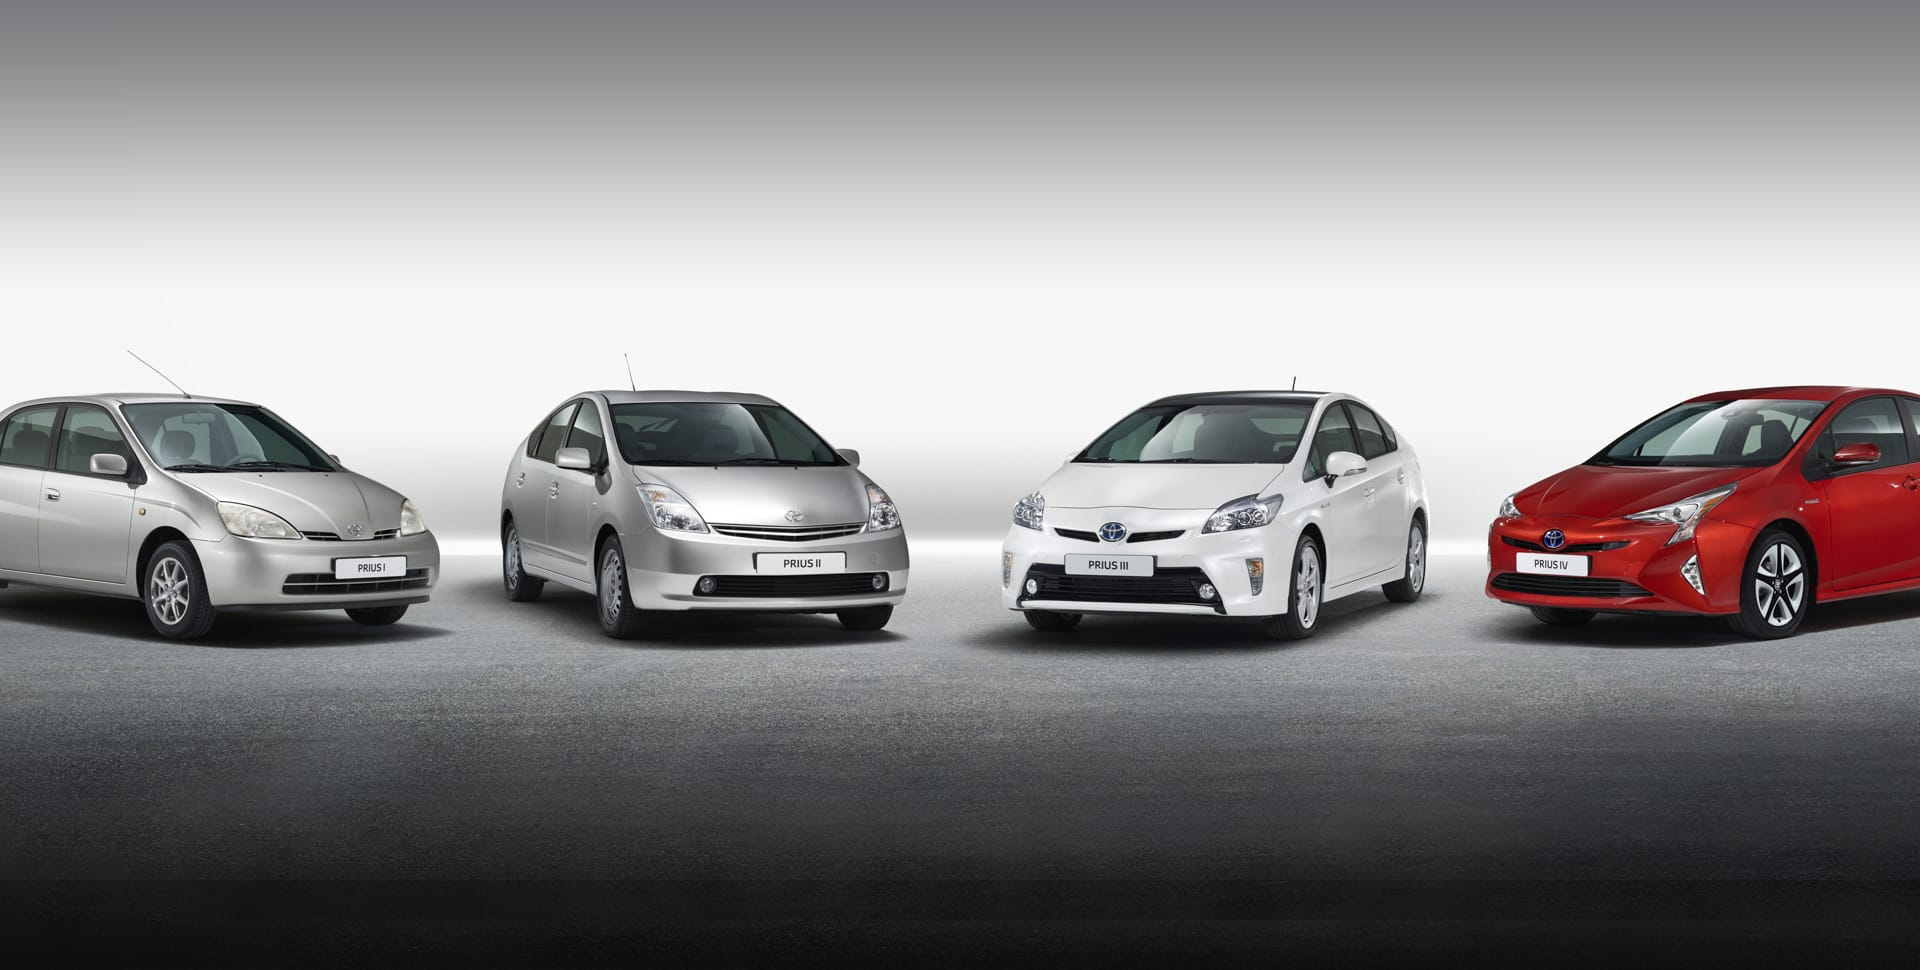 The evolution of the Prius